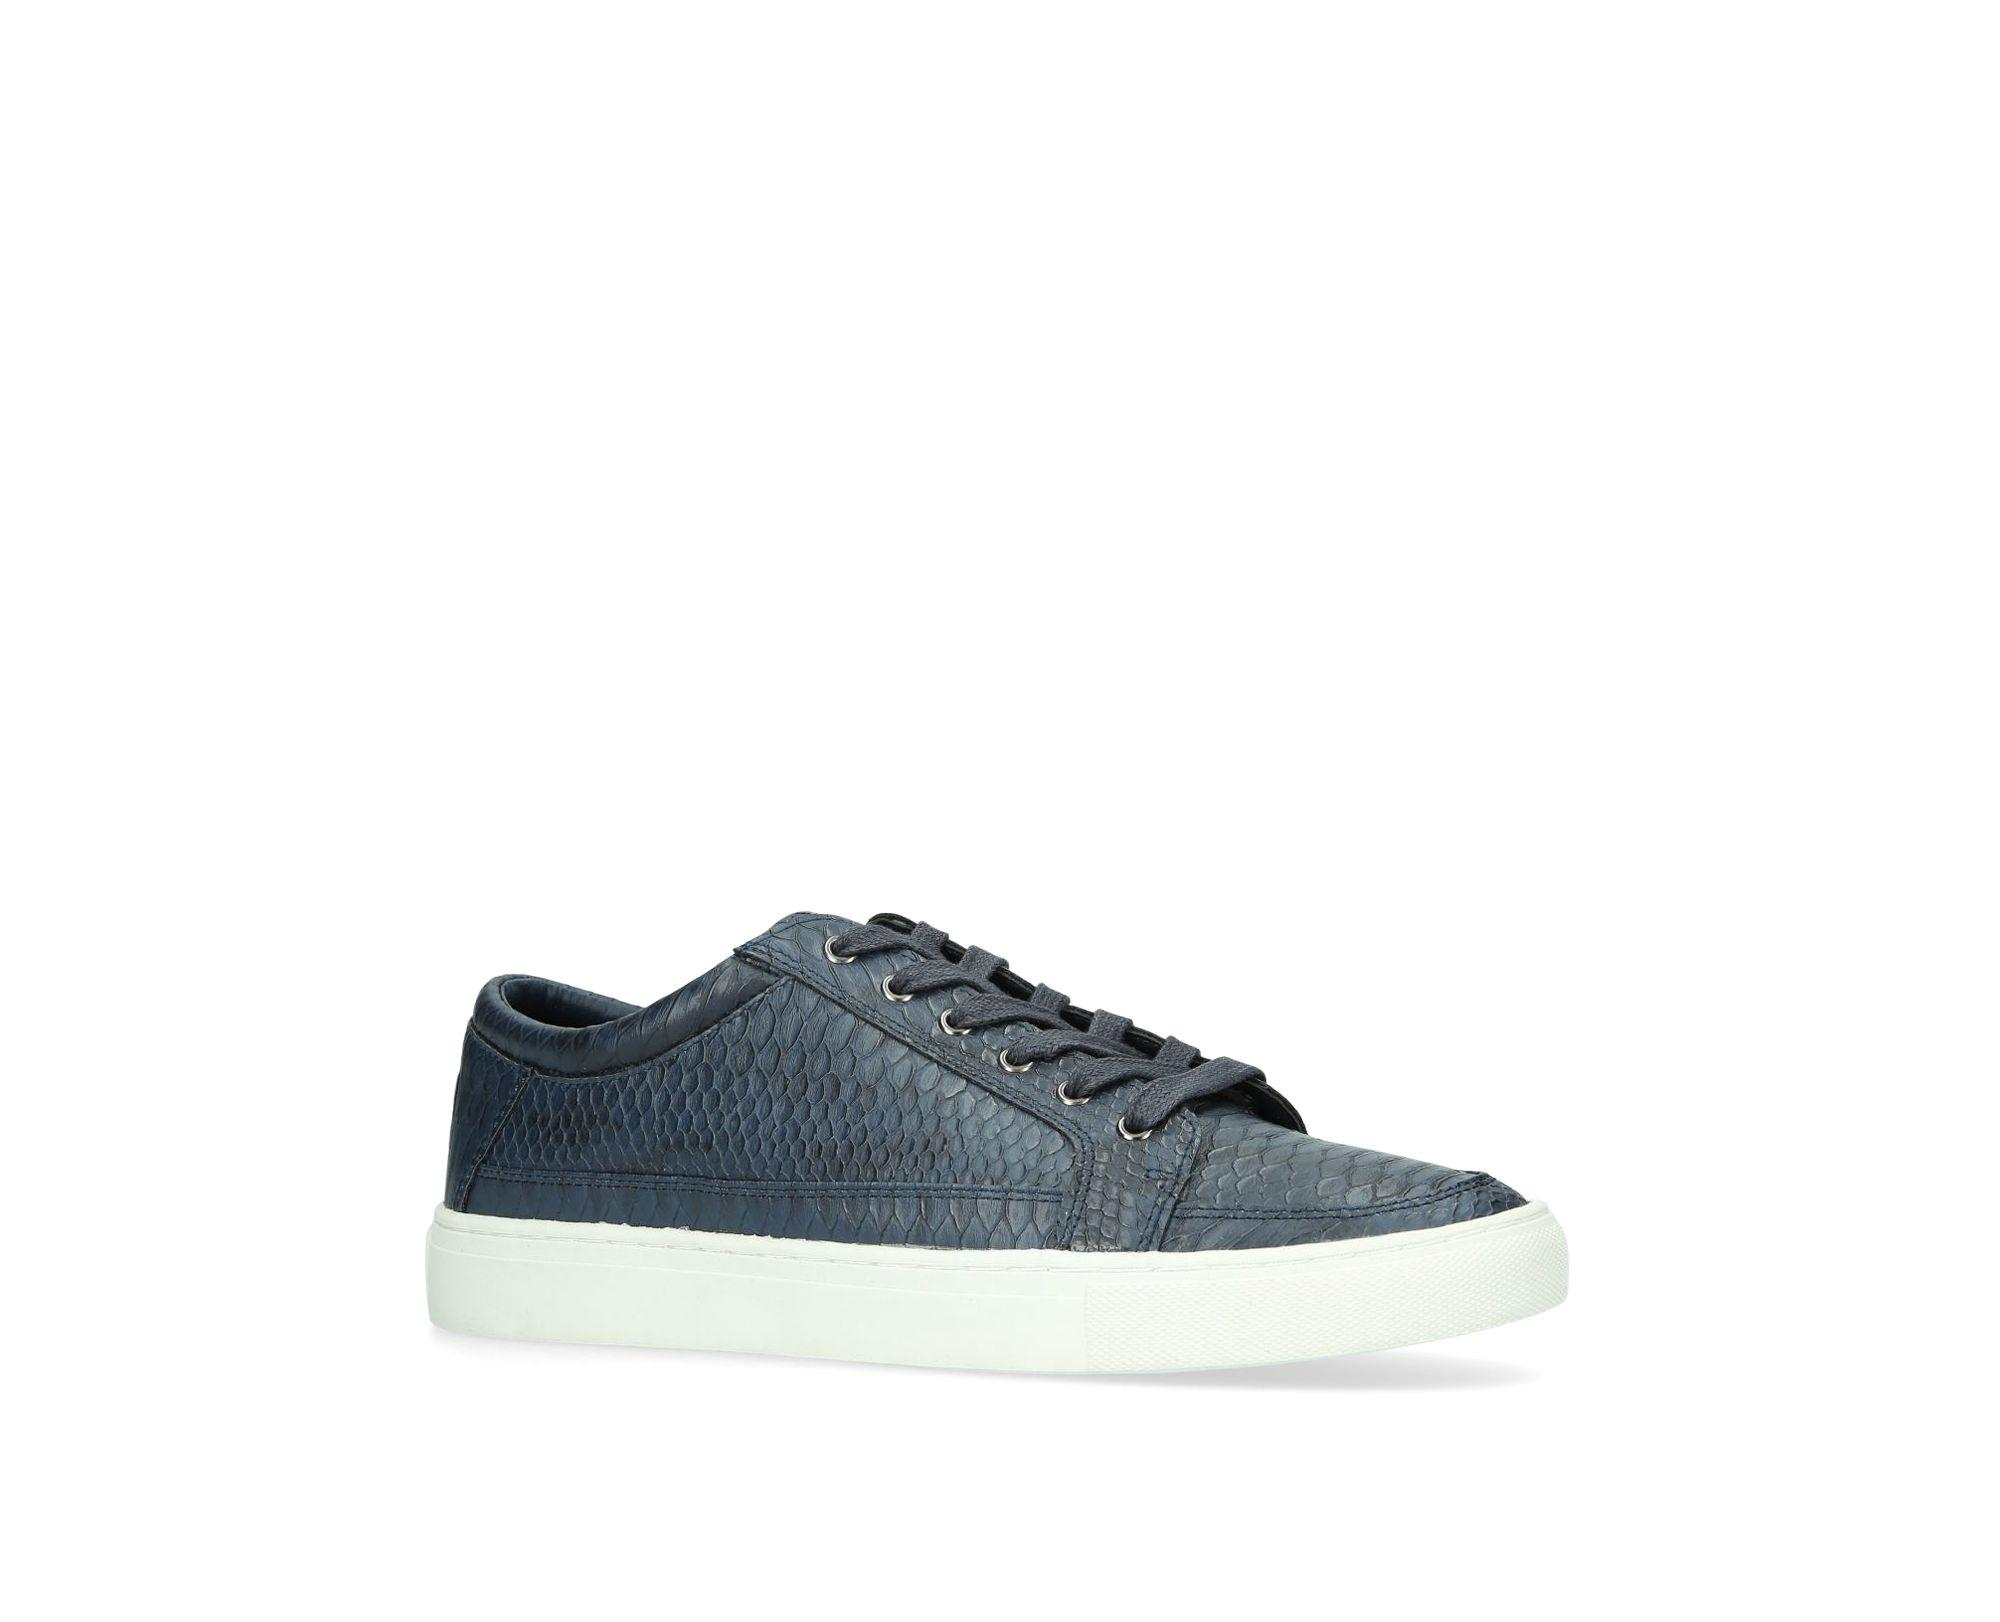 KG by Kurt Geiger Navy 'ripon' Low Top Trainers in Blue for Men